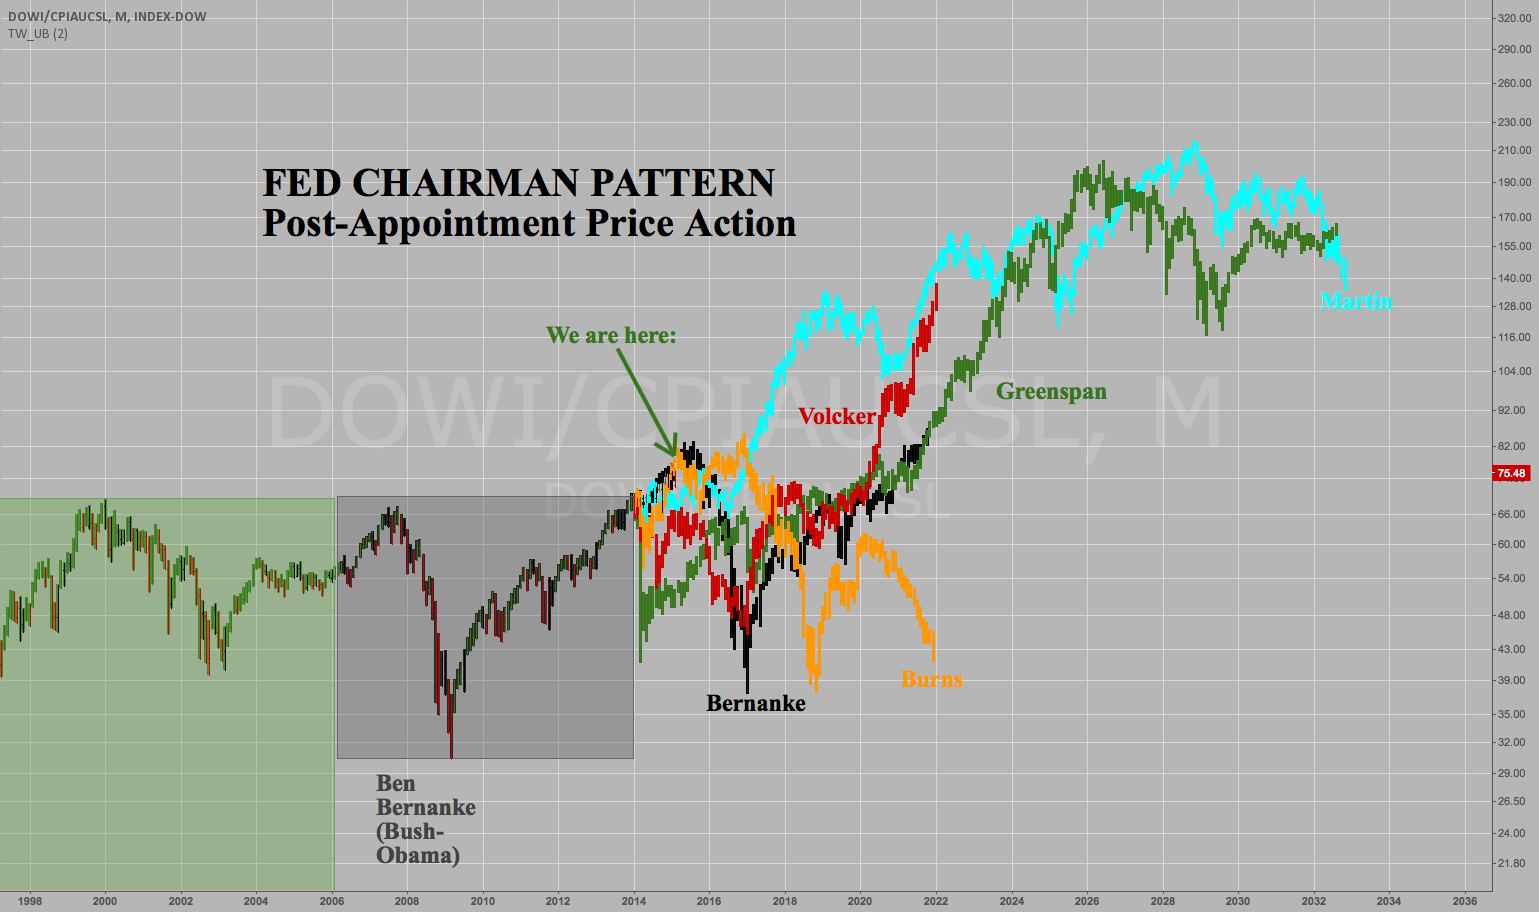 Fed Chairman Stock Market Pattern: 80% chance of...